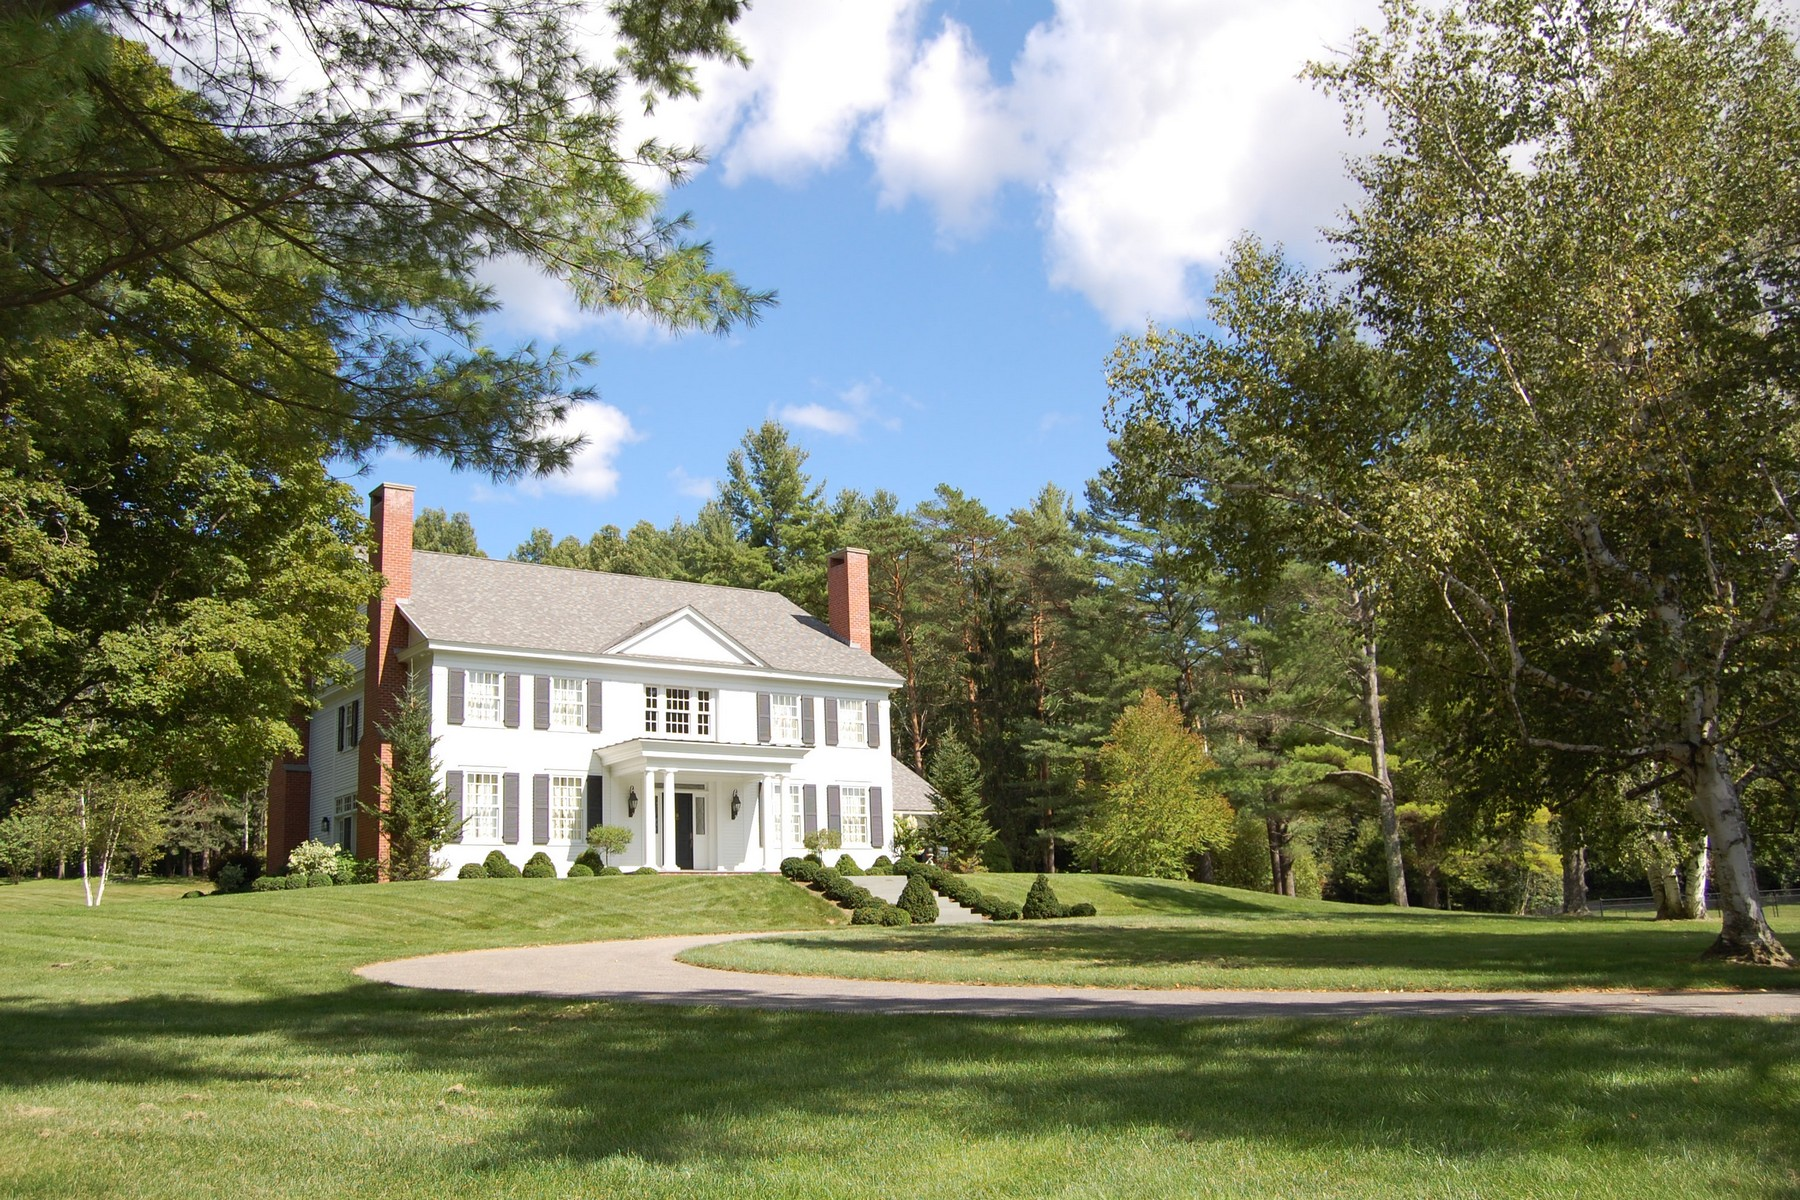 Single Family Home for Sale at Elegant Vermont Retreat 92 Cascades Rd Manchester, Vermont, 05254 United States